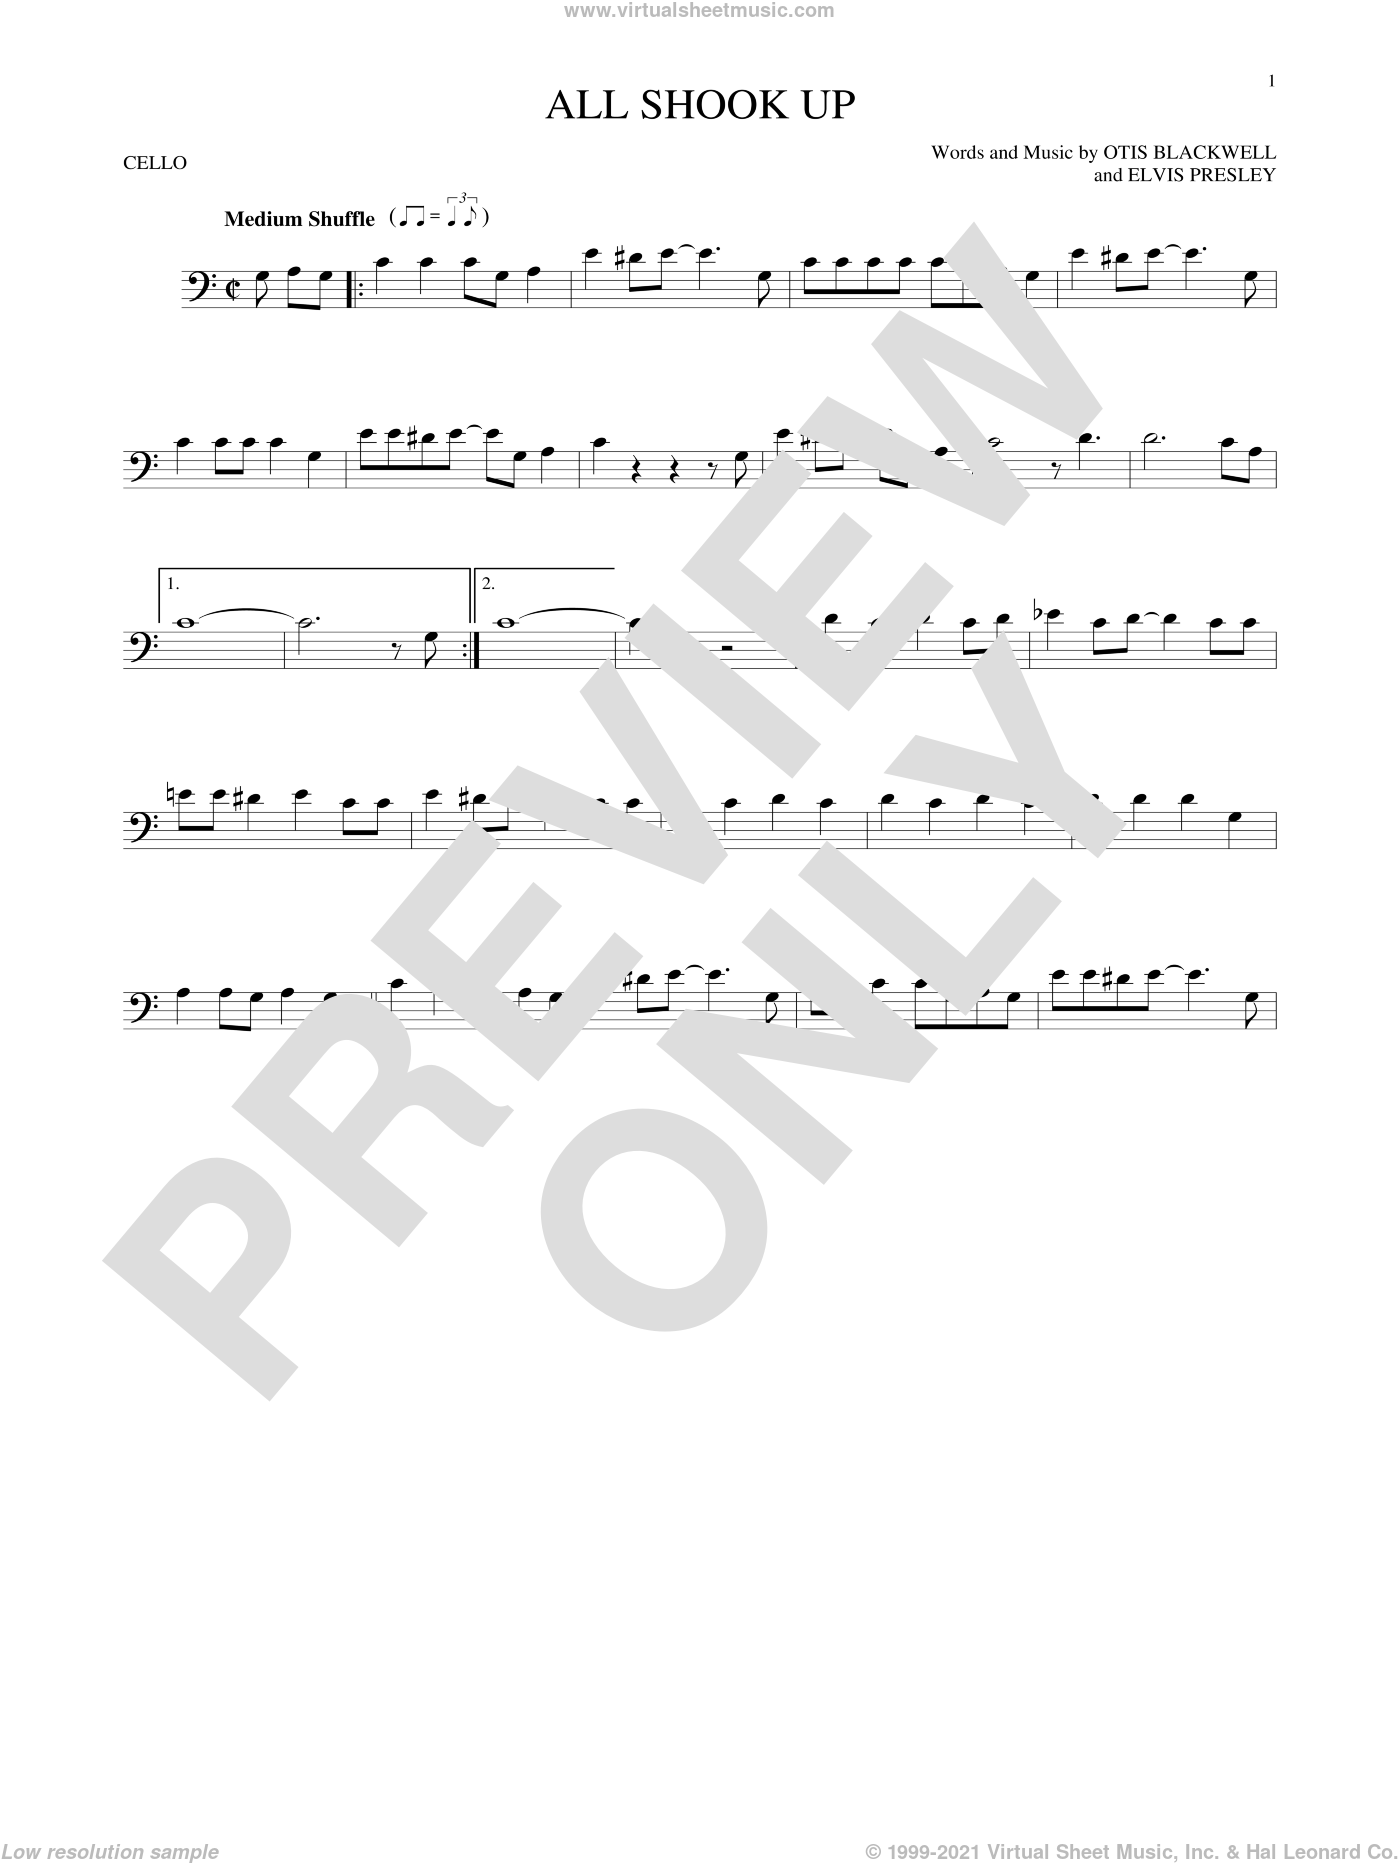 All Shook Up sheet music for cello solo by Elvis Presley, Suzi Quatro and Otis Blackwell, intermediate skill level